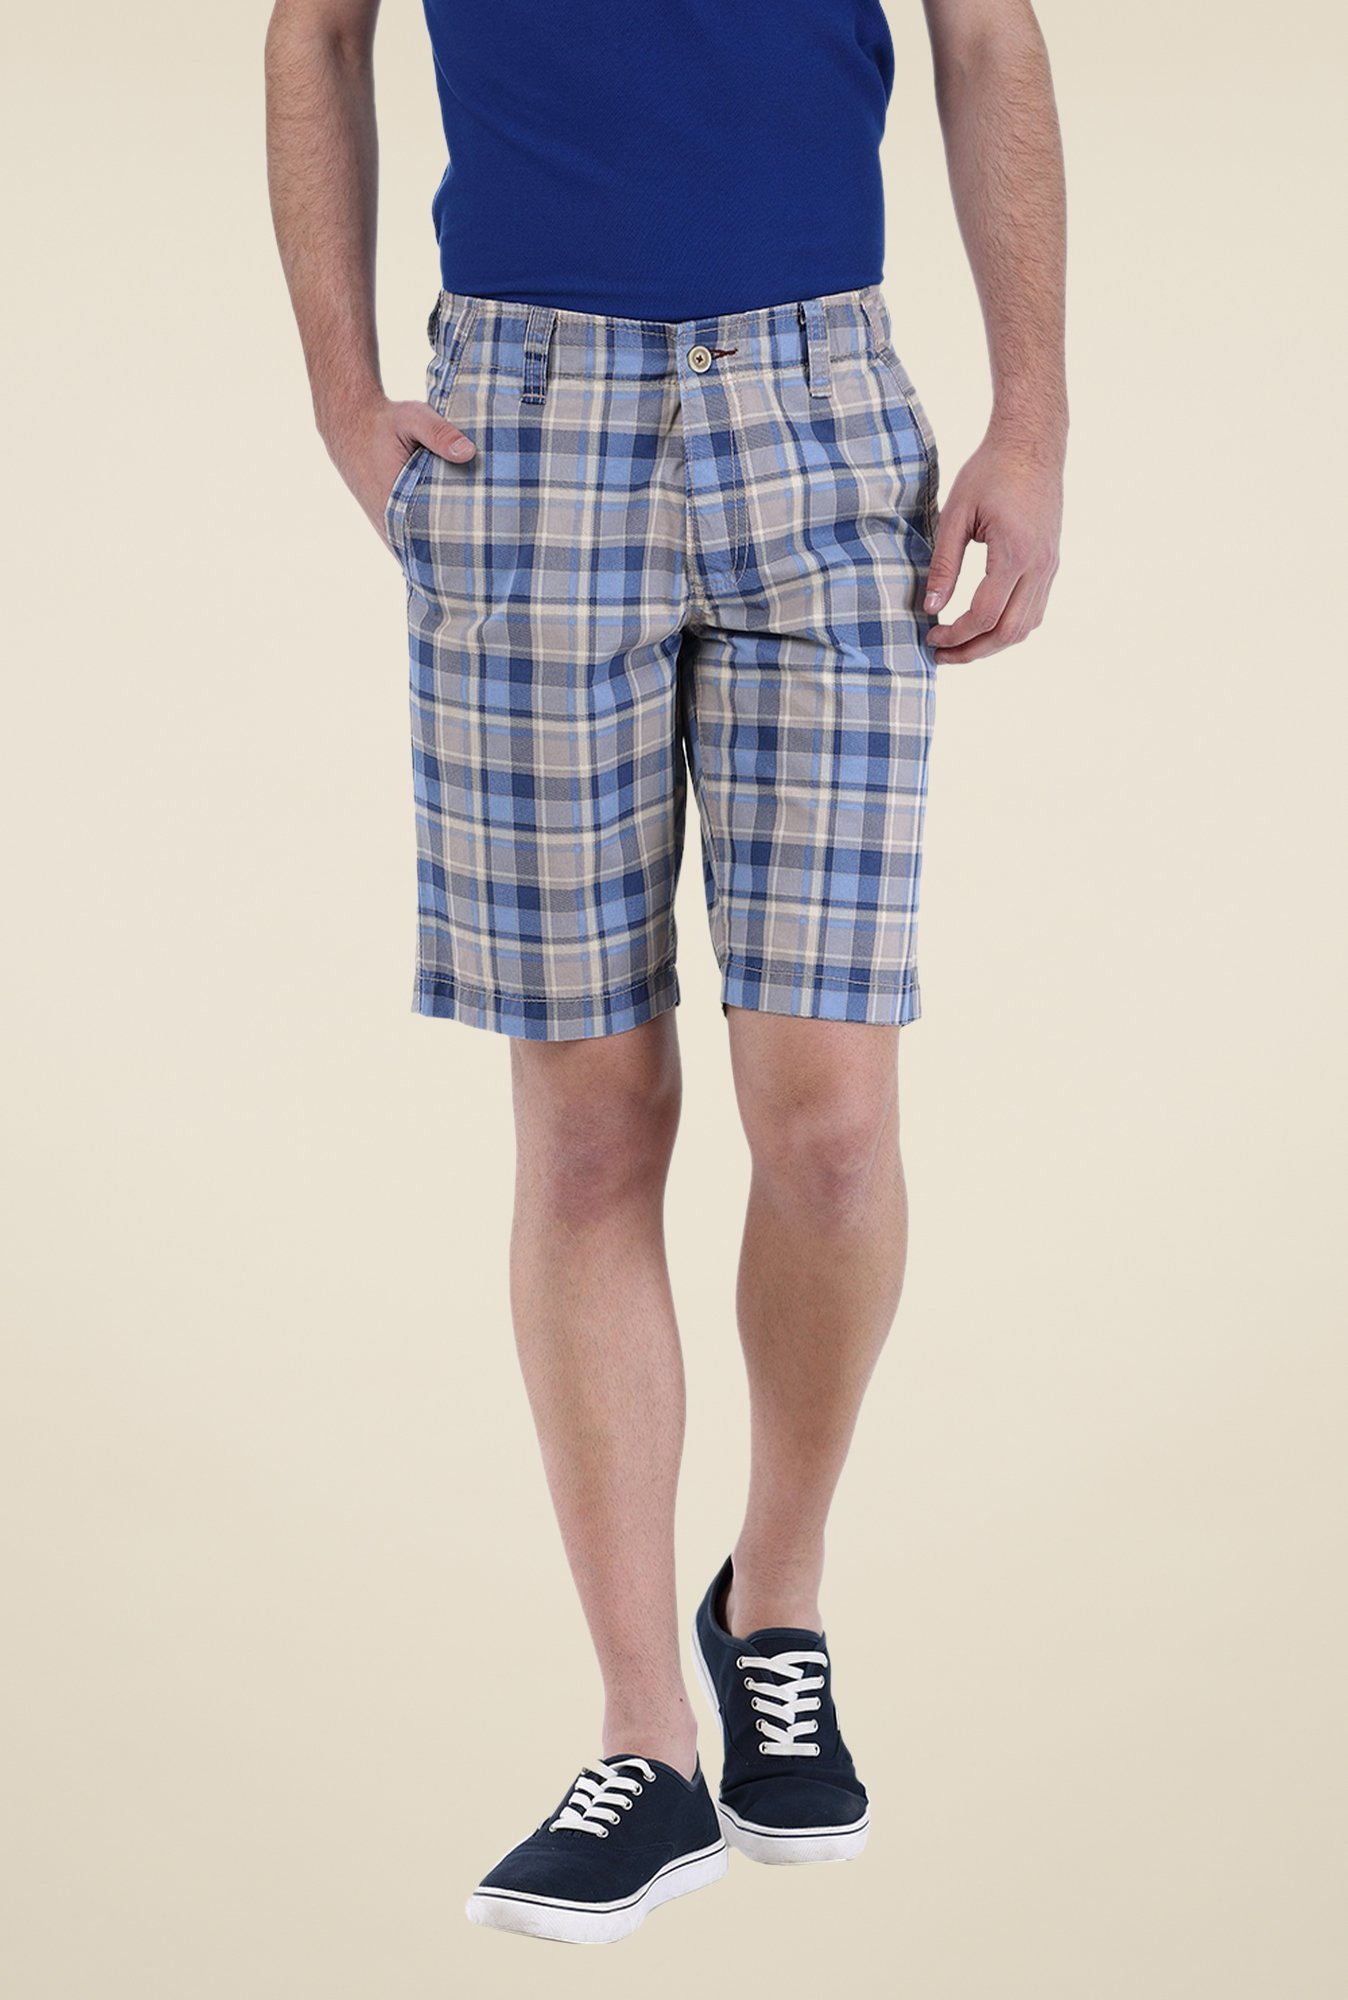 Basics Blue Checks Shorts